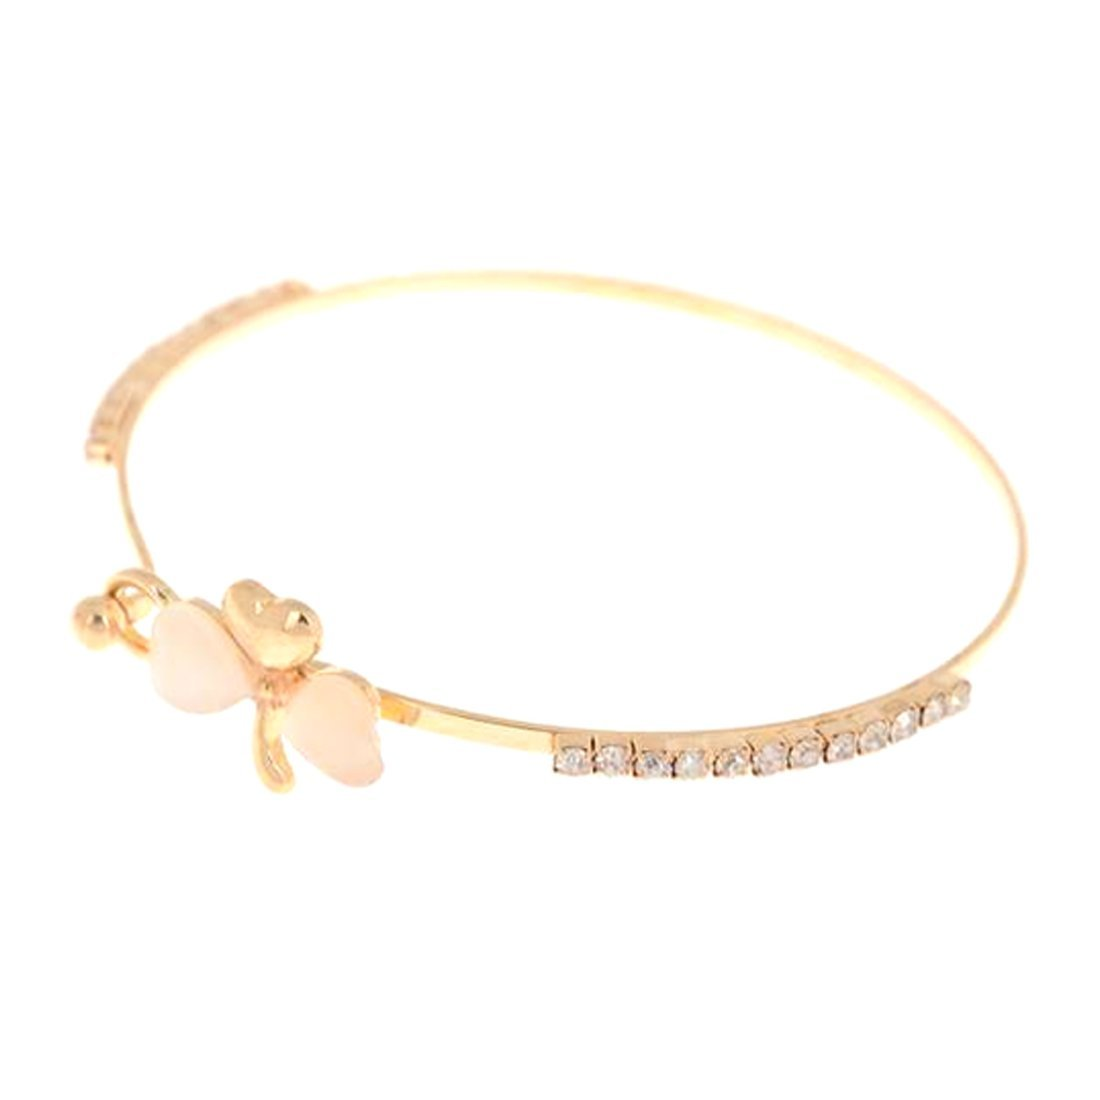 Sweet Clover Bangle Creative Personality Unique Sweet Clover Bracelet Bangle Fashion Jewelry Gift for Girls Women